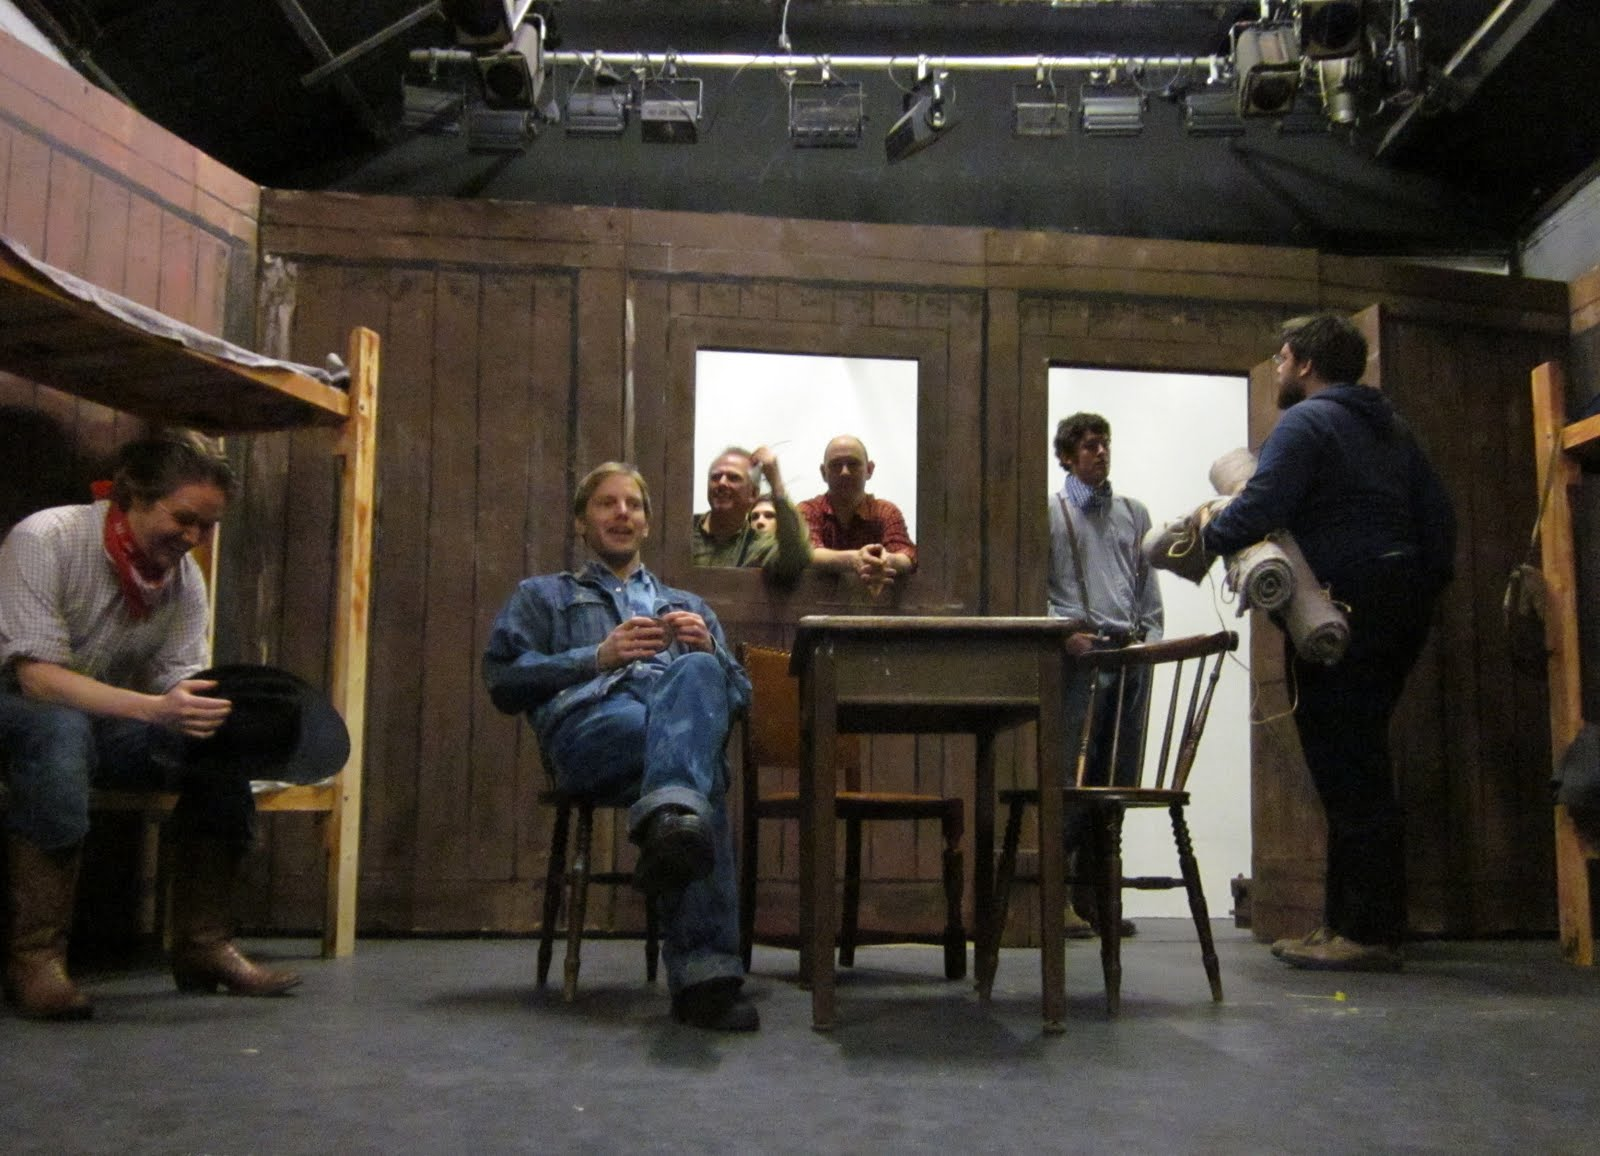 Progress Theatre Of Mice And Men The Finishing Touches